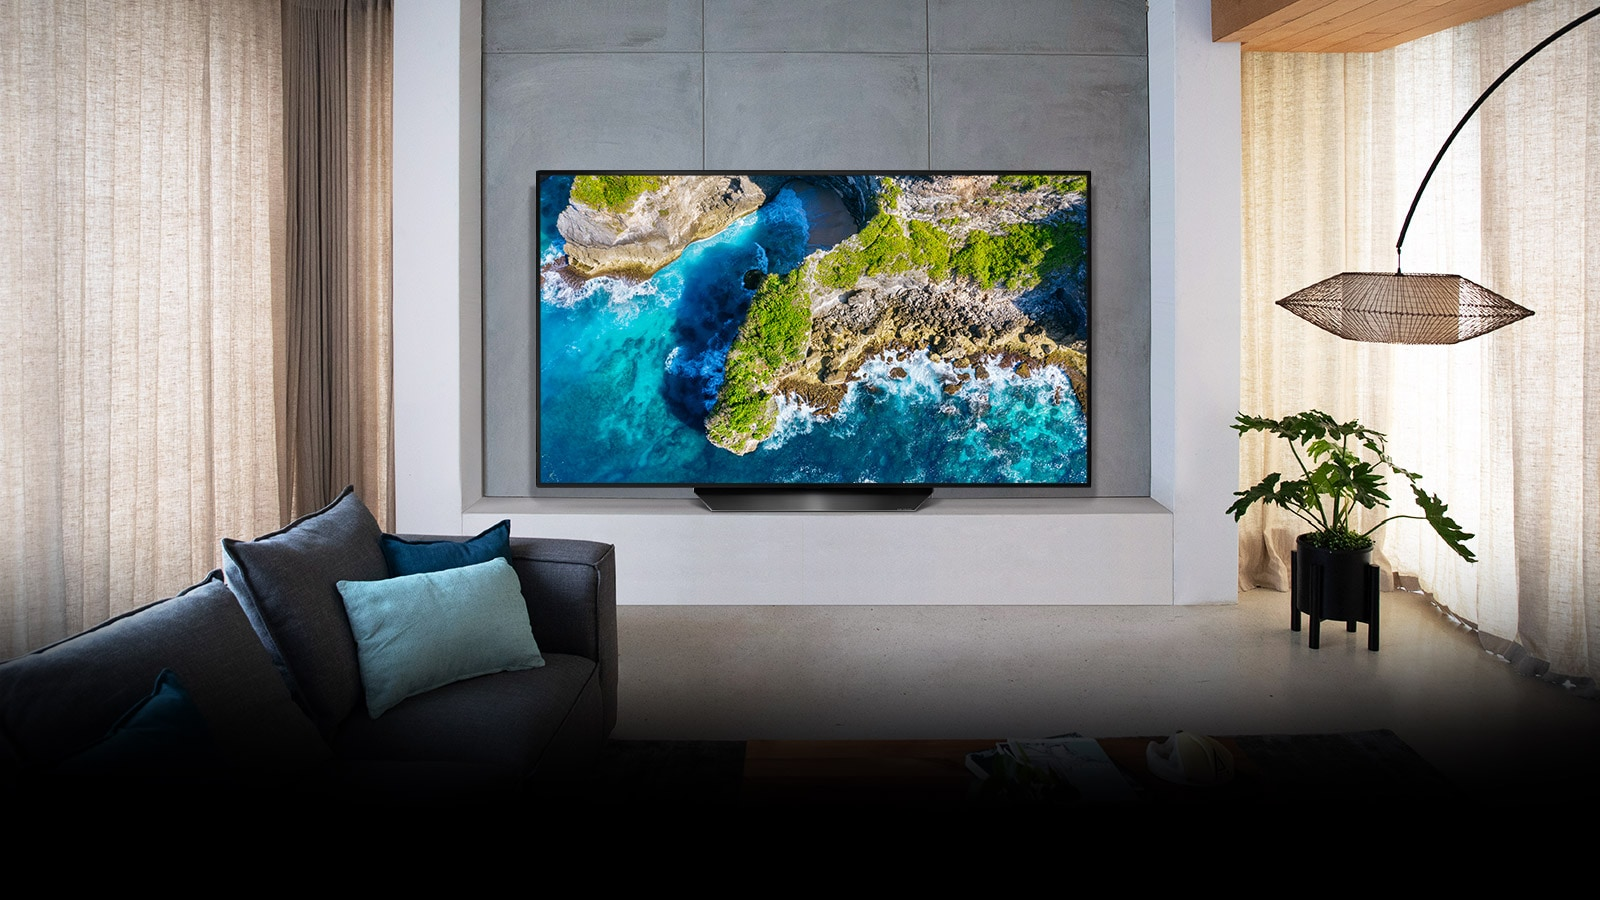 TV showing an aerial view of nature in a luxurious house setting